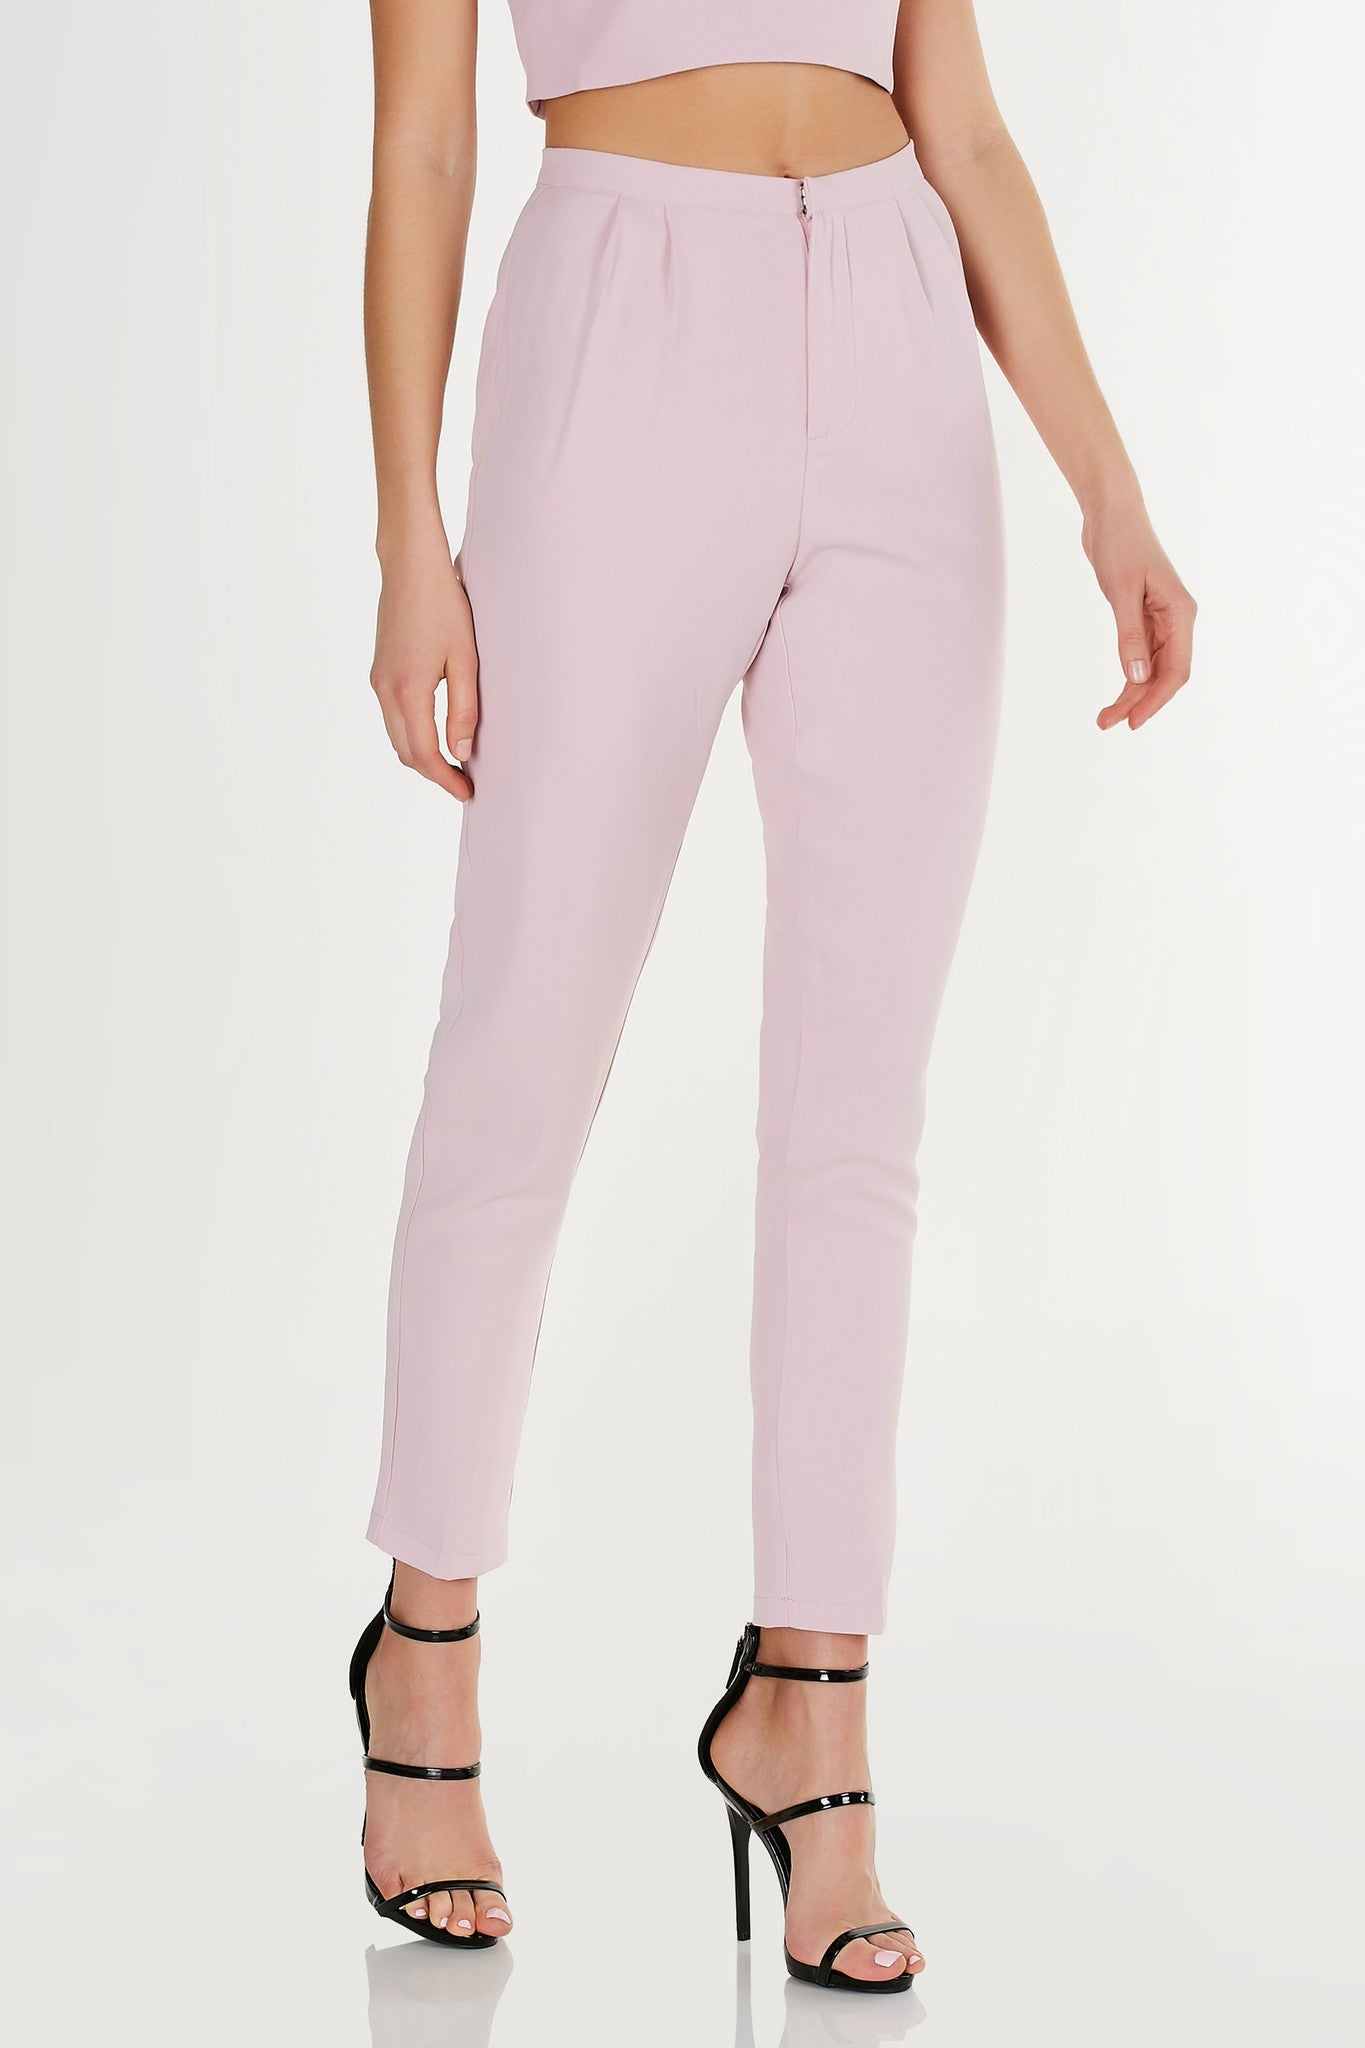 Super chic pair of slacks with high waistline and tapered hem. Comes in a set with matching top sold separately.